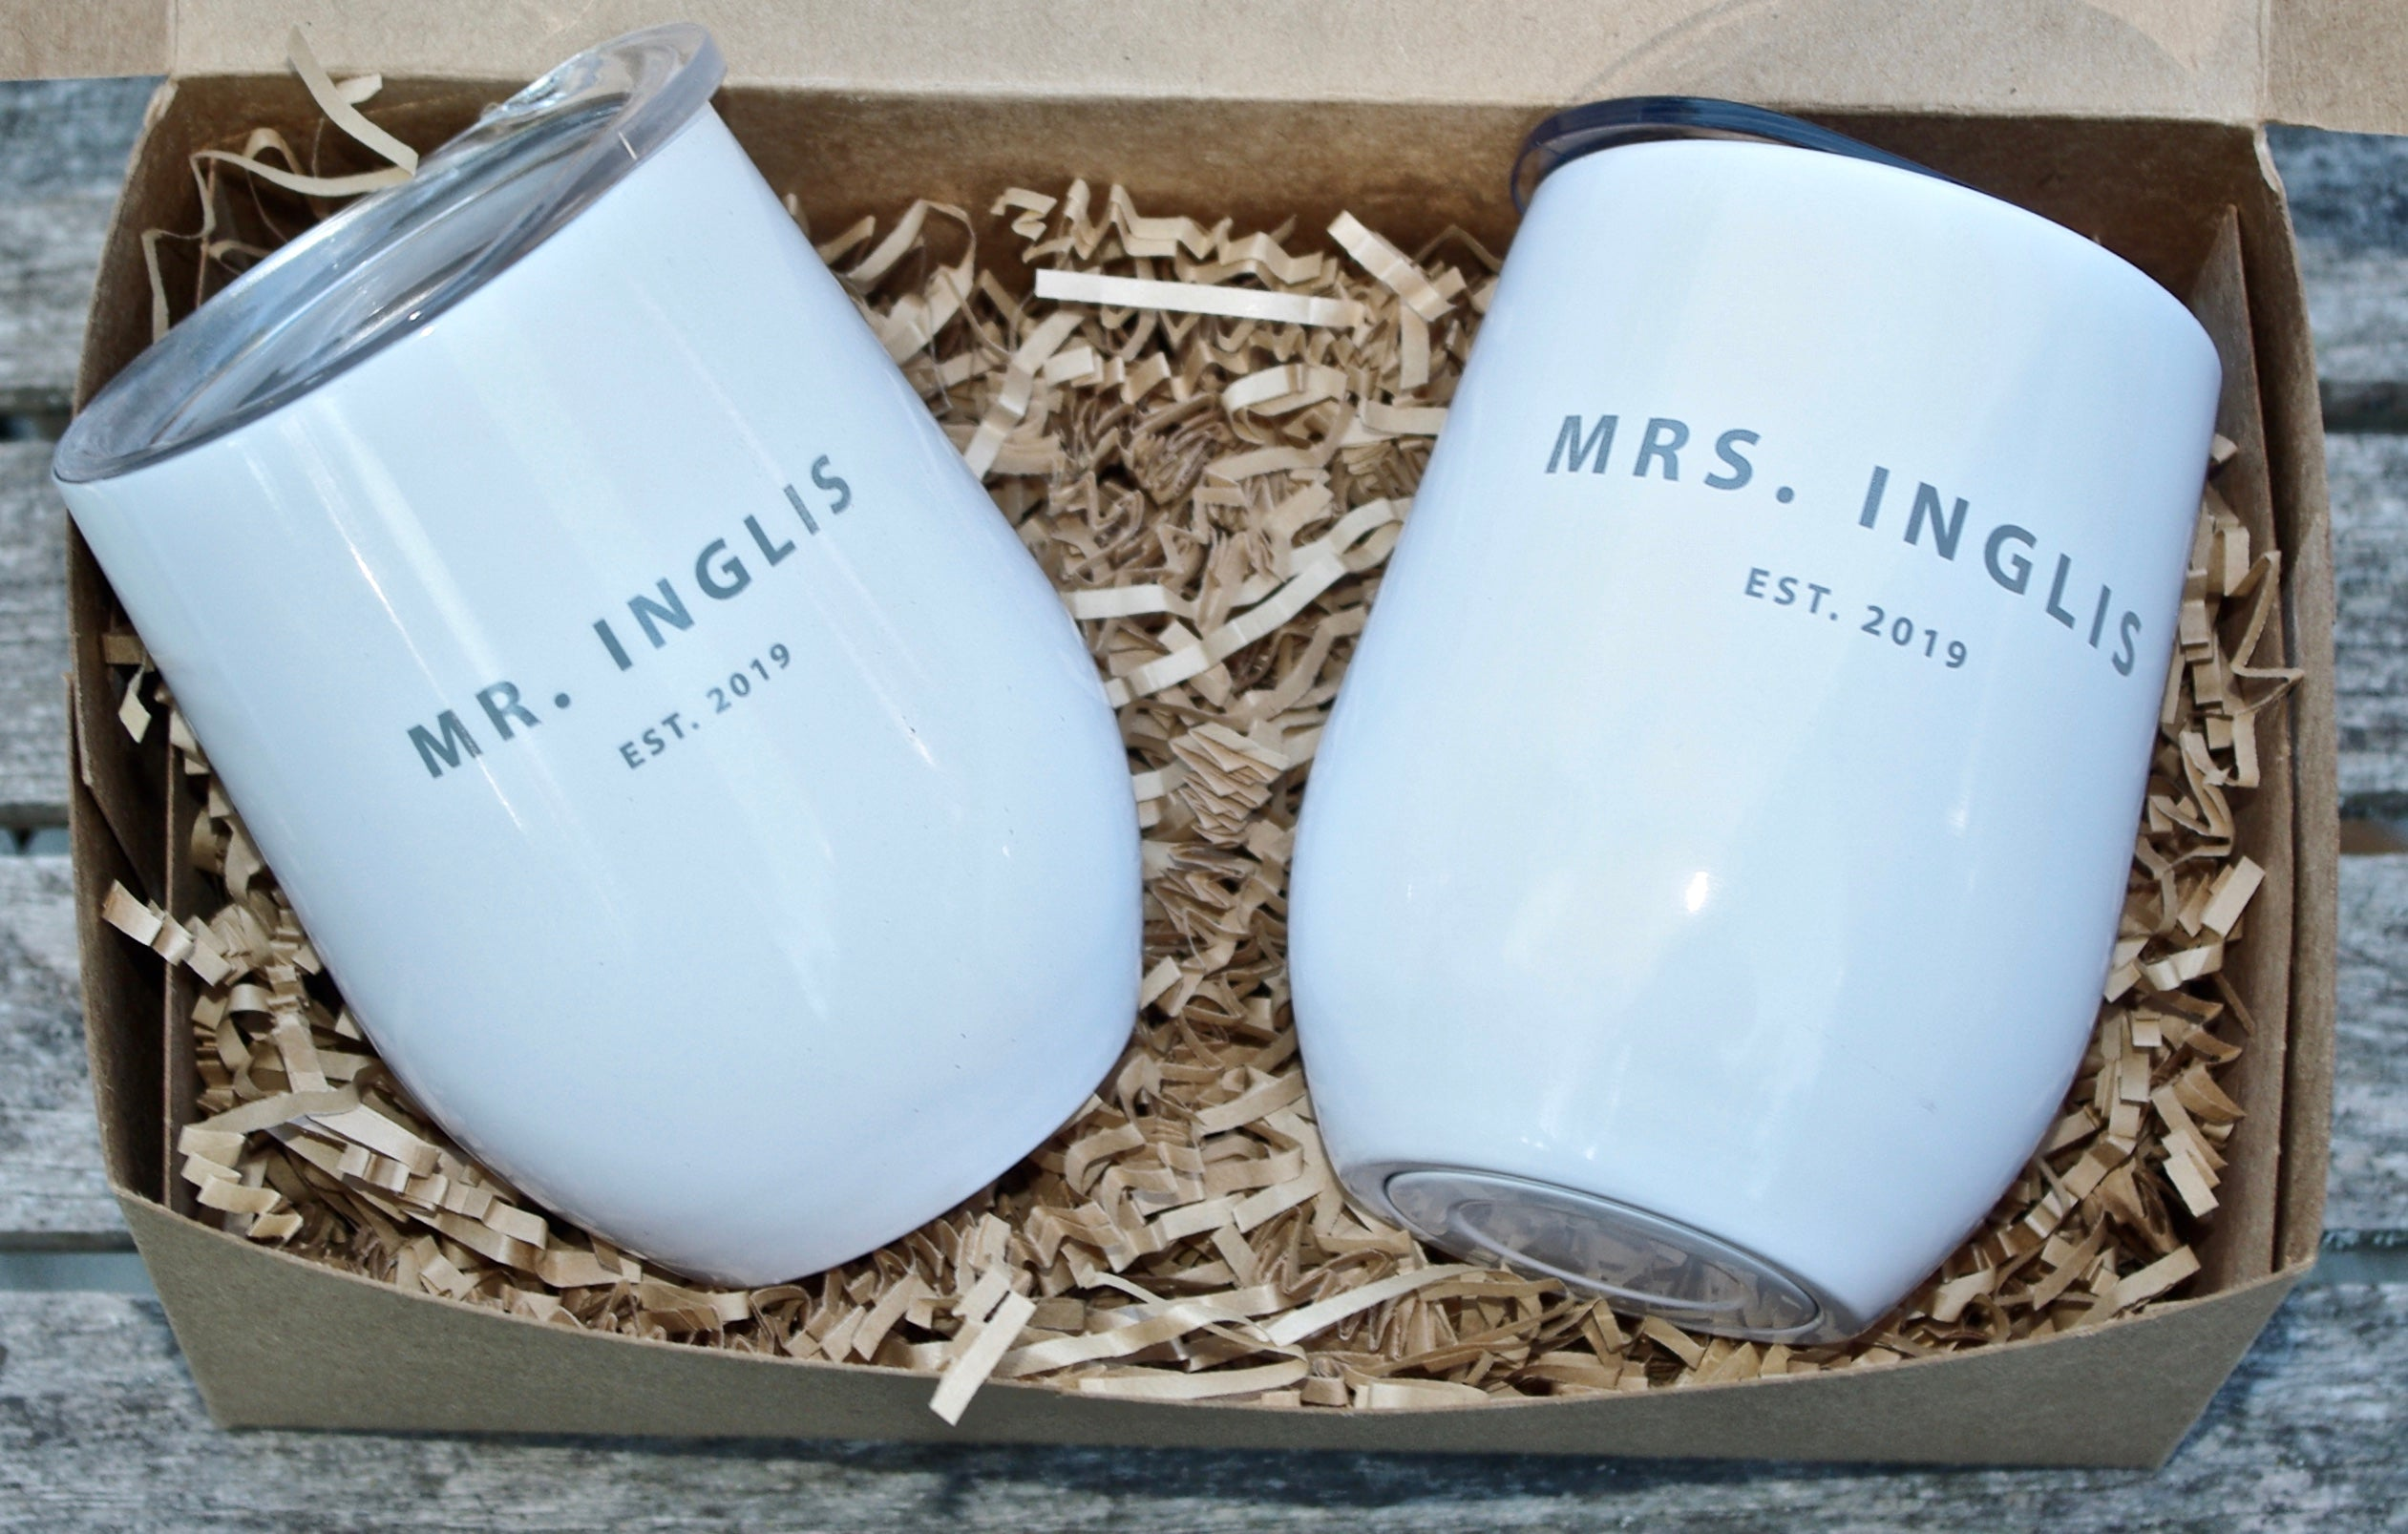 mr and mrs mr & mrs gifts bride to be best wedding gifts anniversary gift